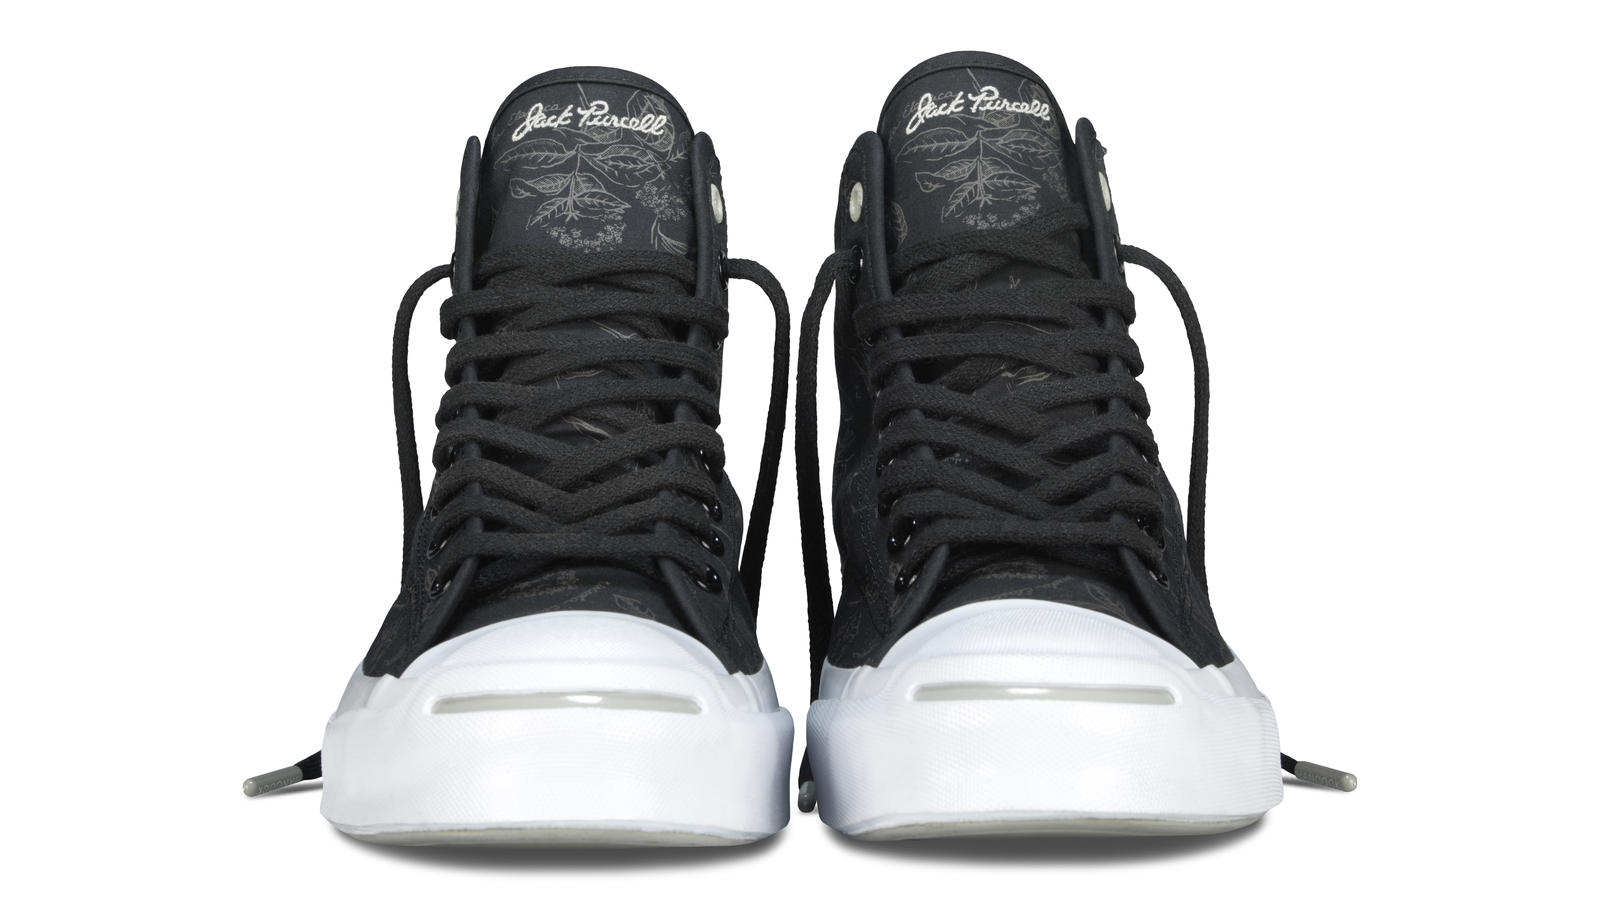 Converse Jack Purcell Signature Hancock   Black Pair Original